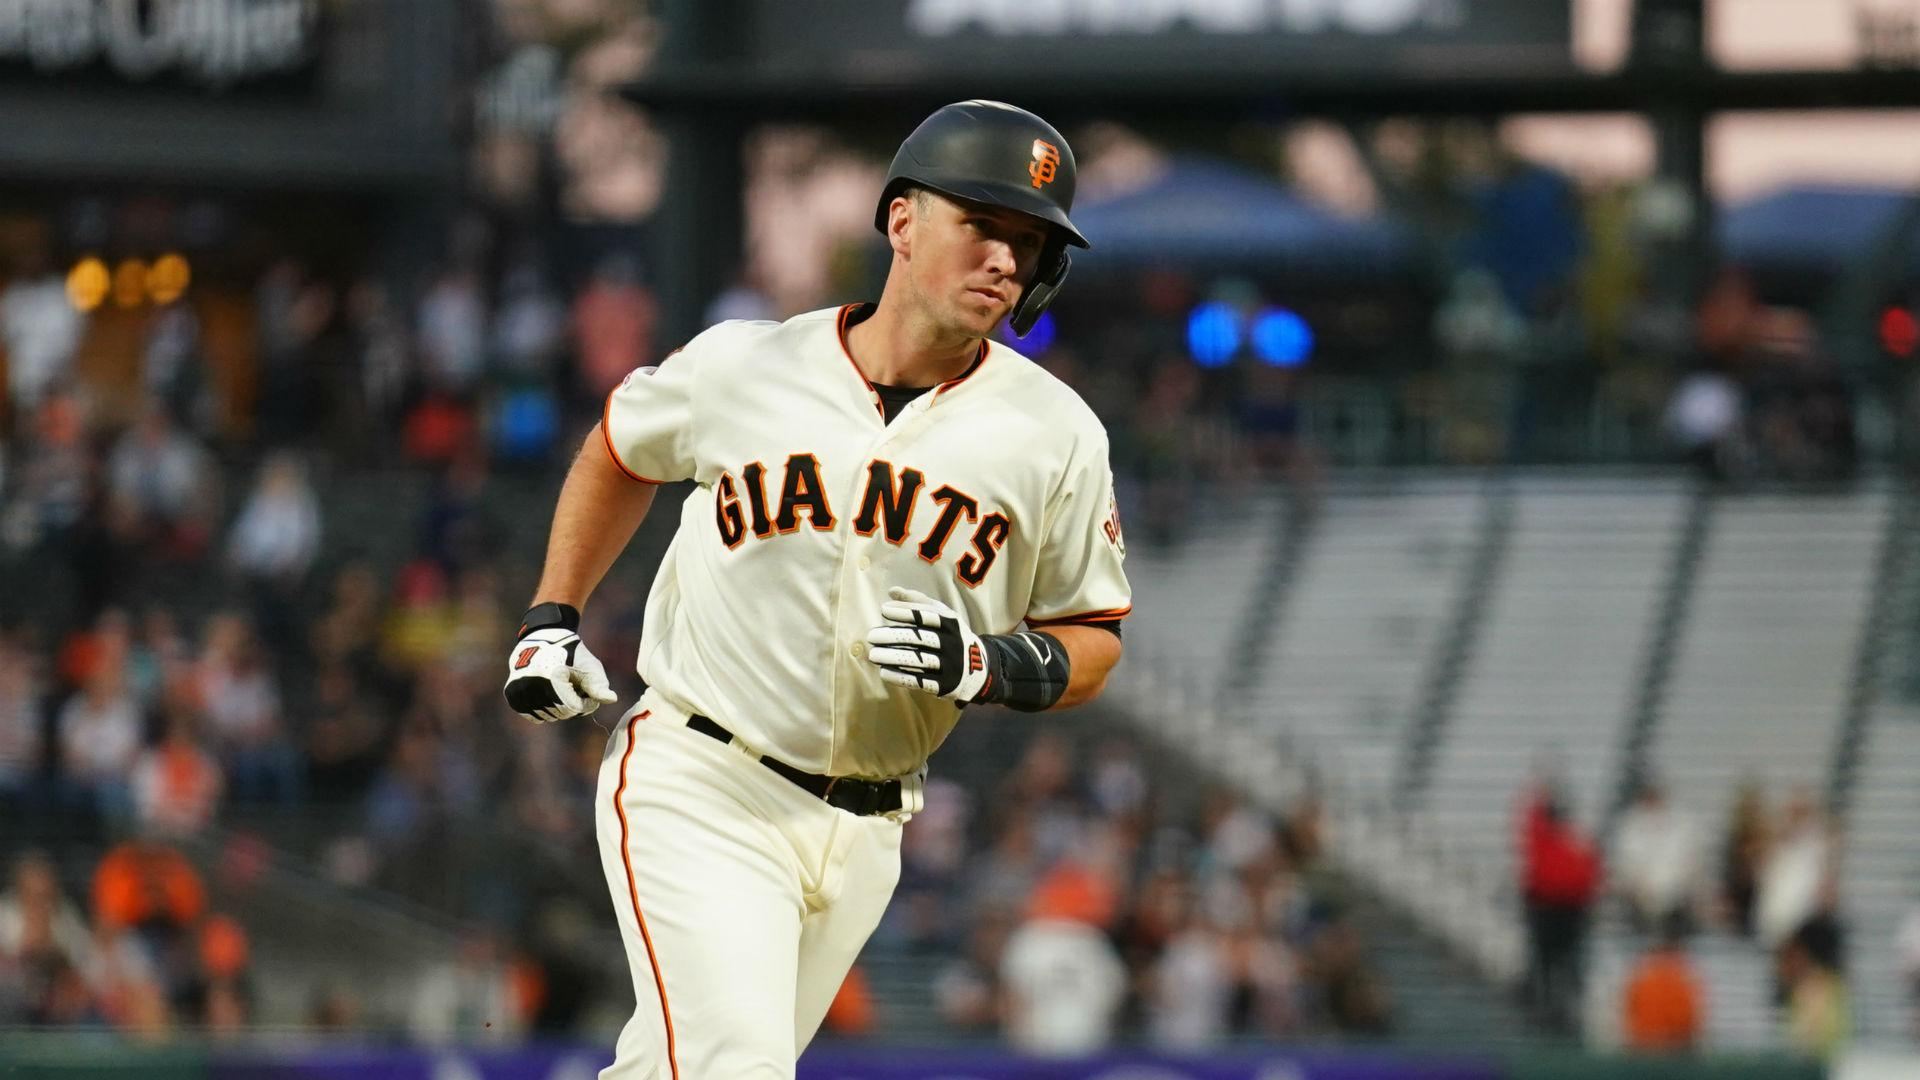 Giants catcher Posey misses second straight workout for 'personal issue'